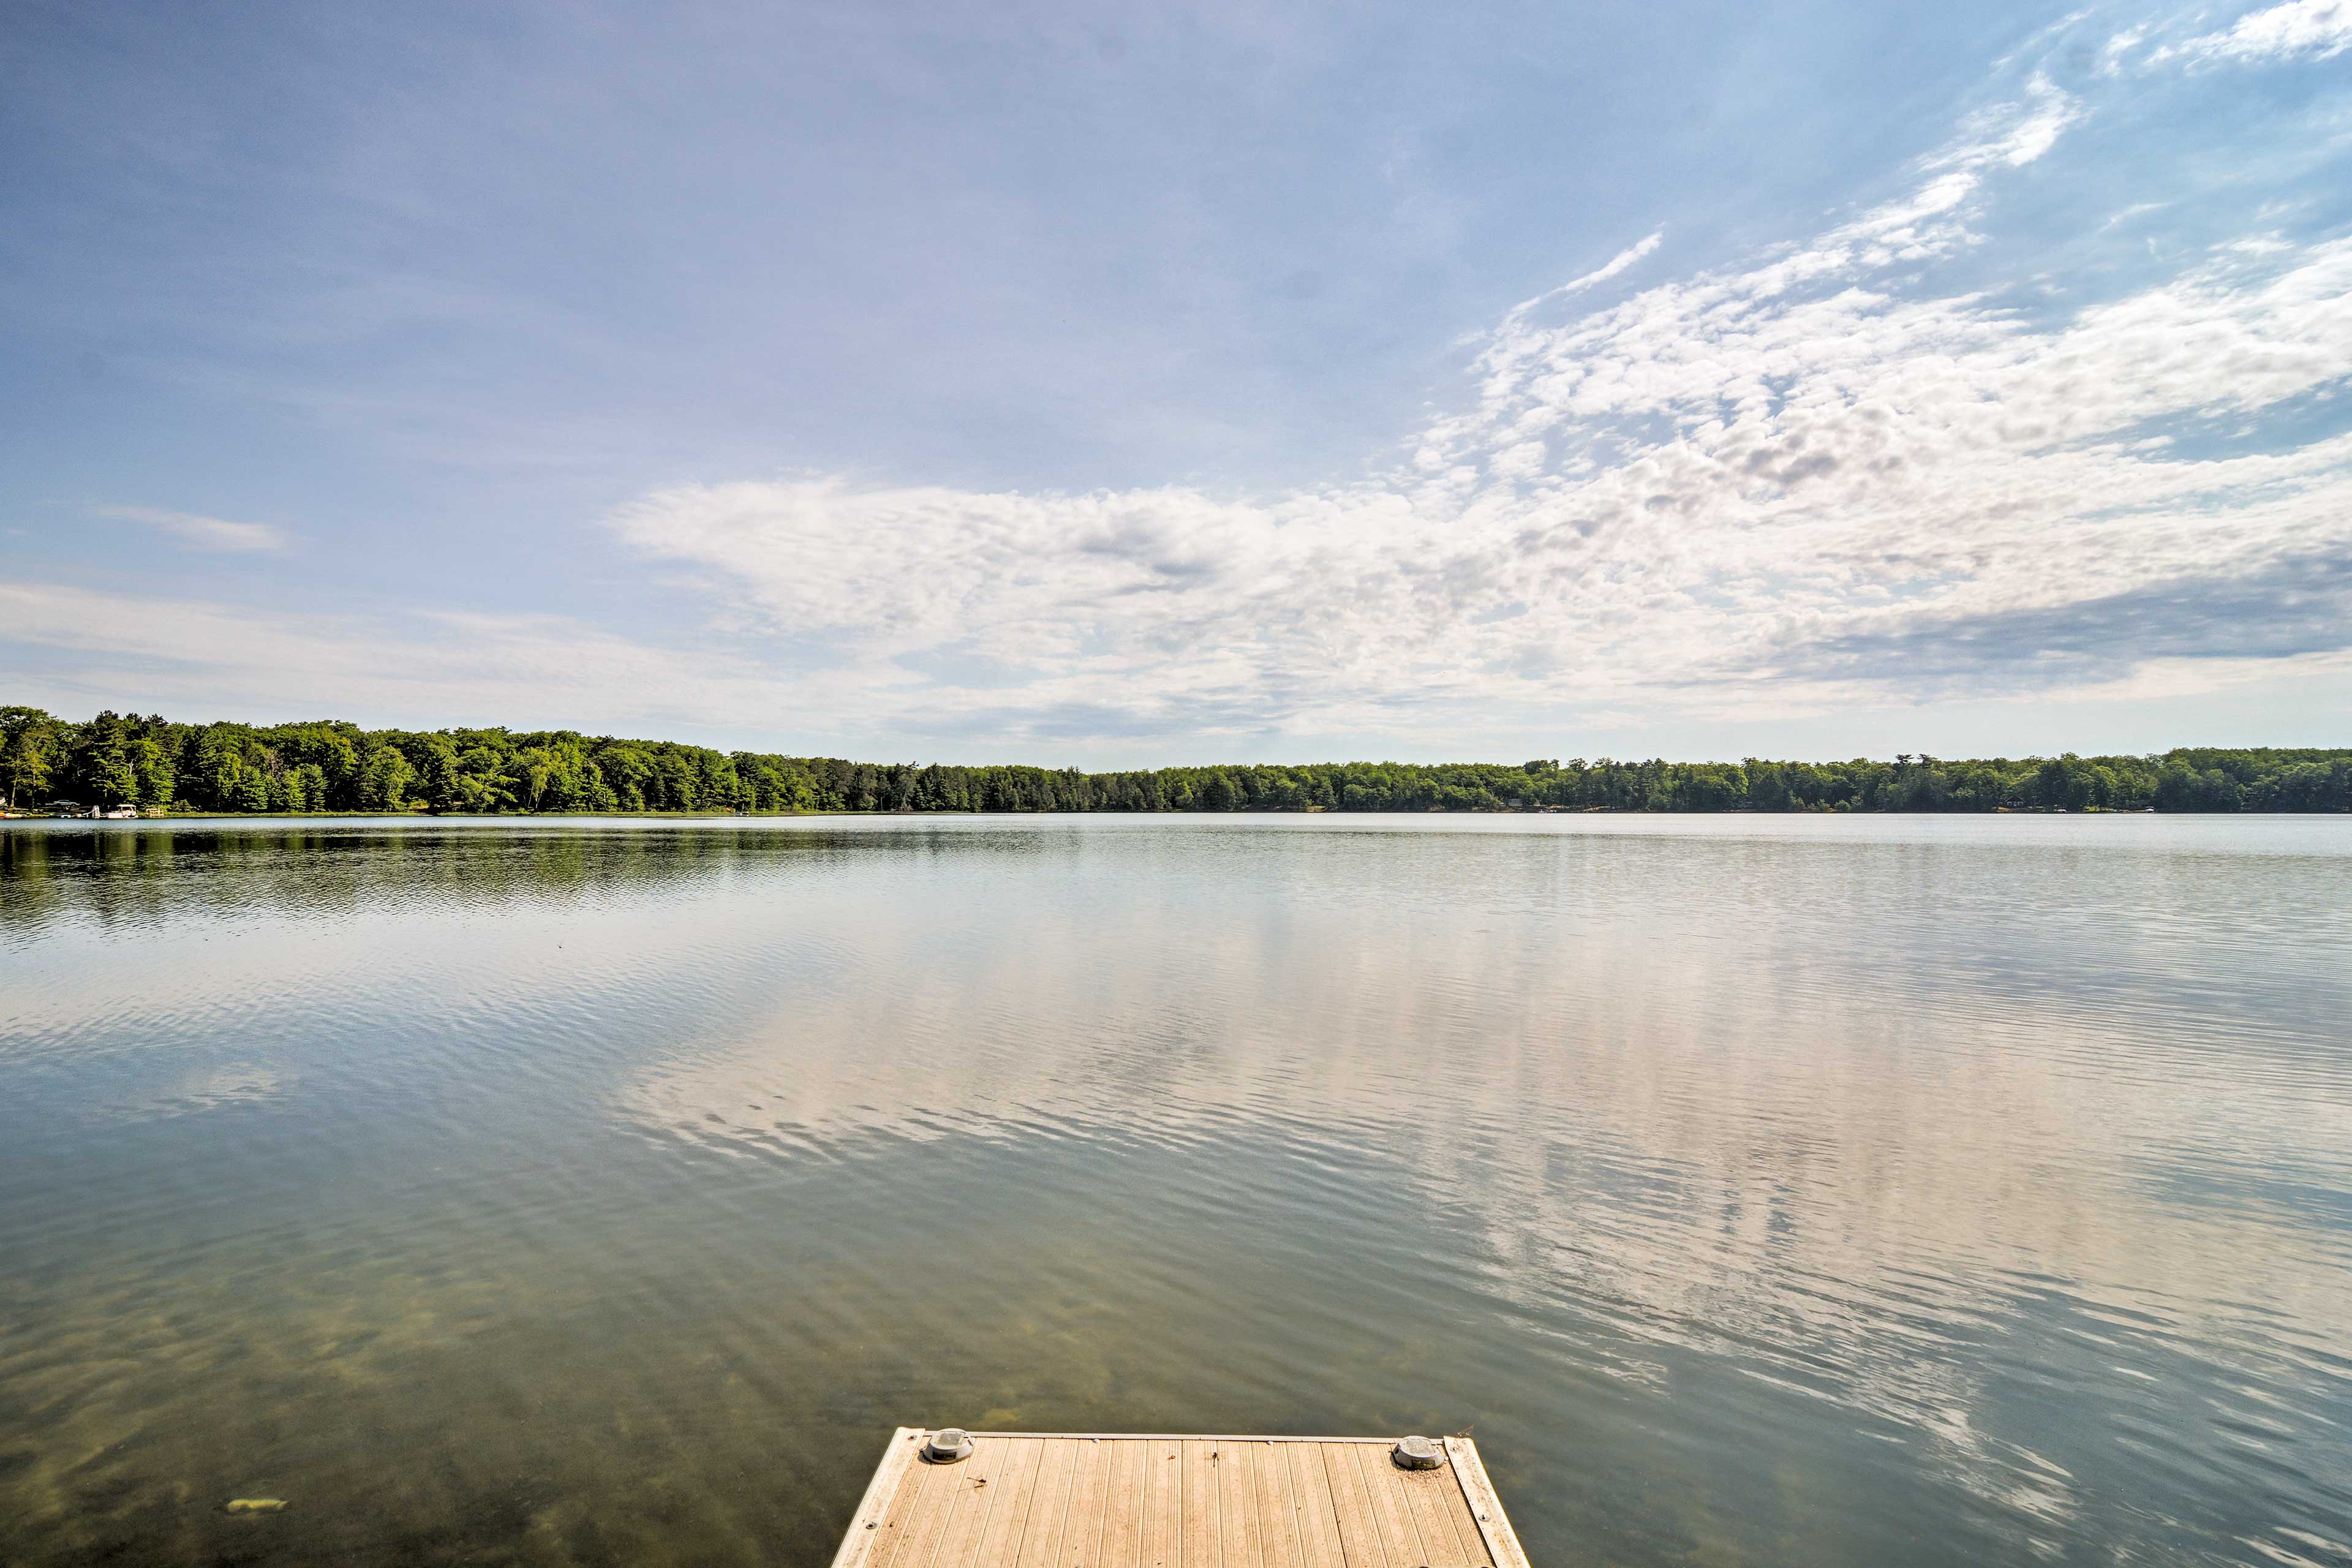 Gooseneck Lake's crystal clear waters beckon you to waste the day away.